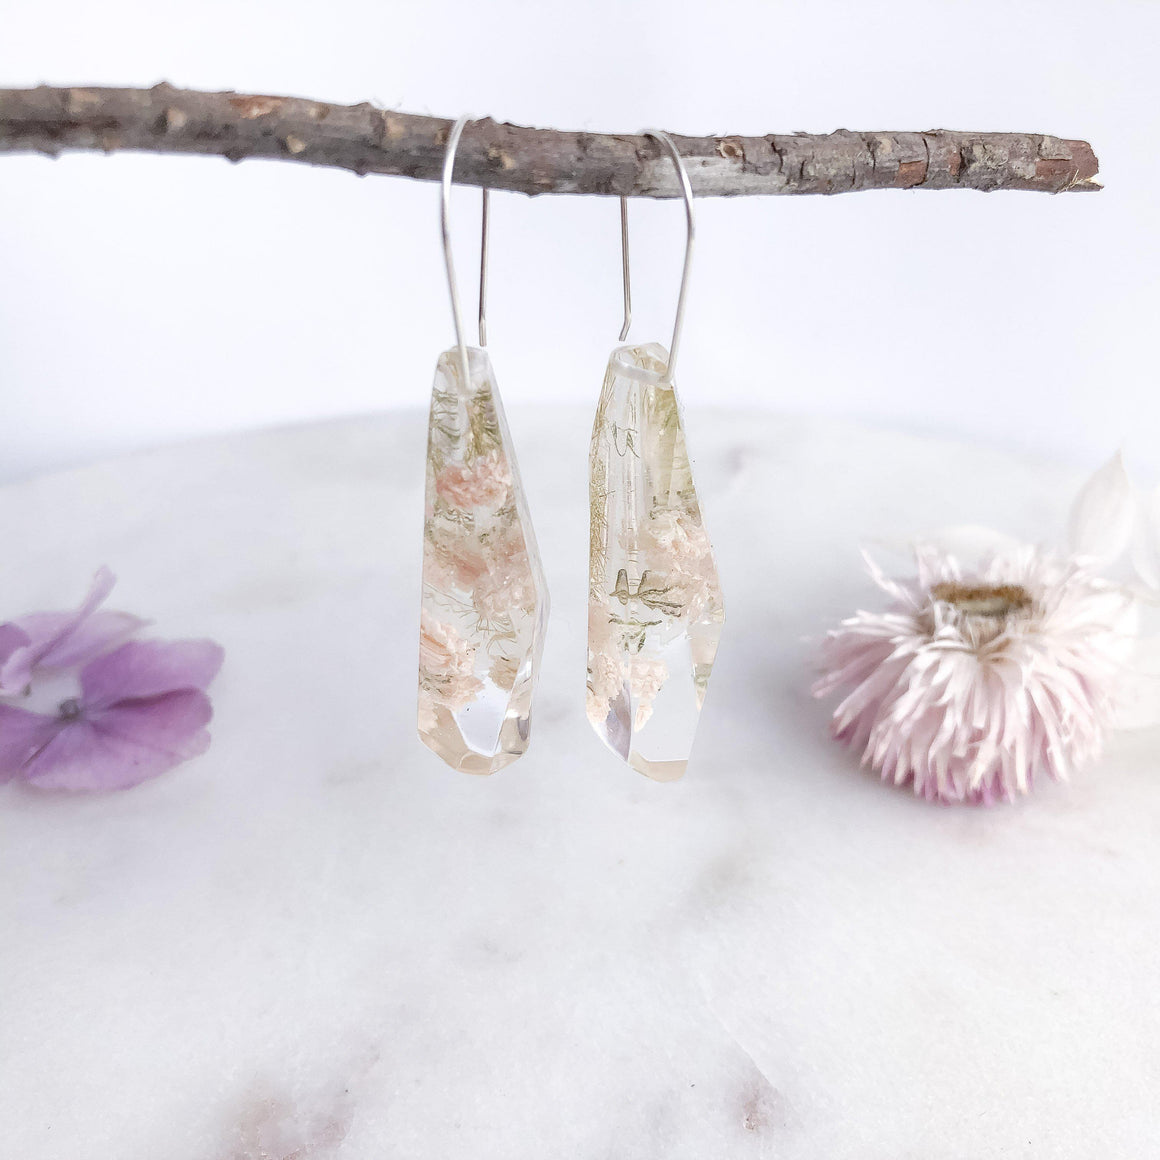 Faceted Dangles - Baby's Breath & Asparagus fern - Little Hurricane Co